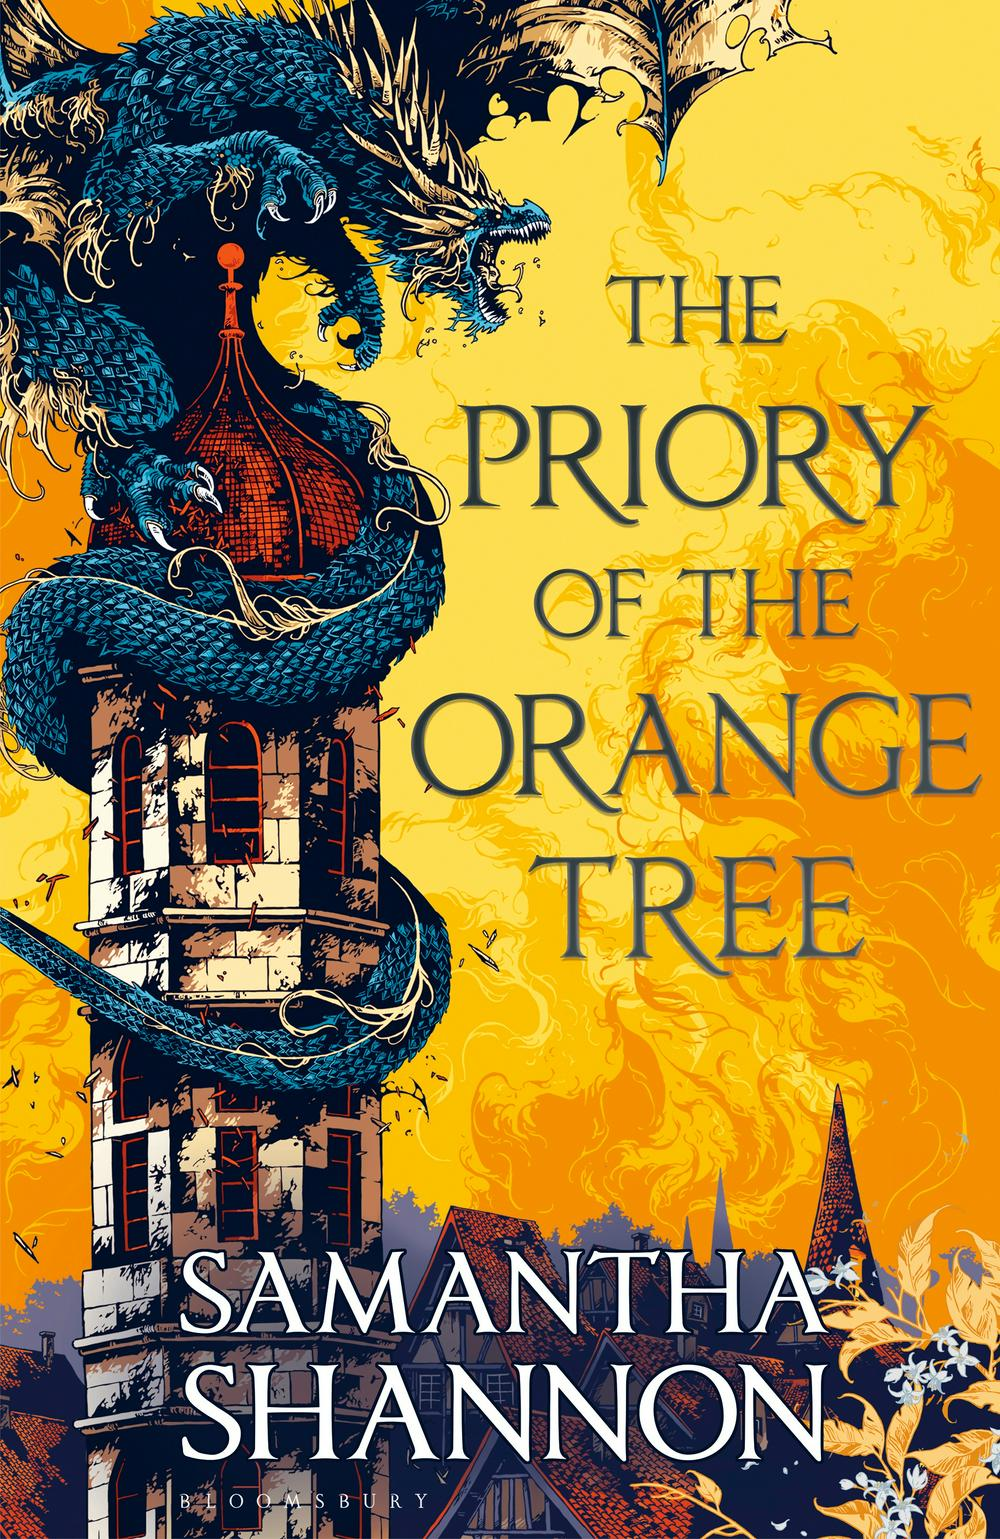 The Priory of the Orange Tree by Samantha Shannon, ISBN: 9781408883464